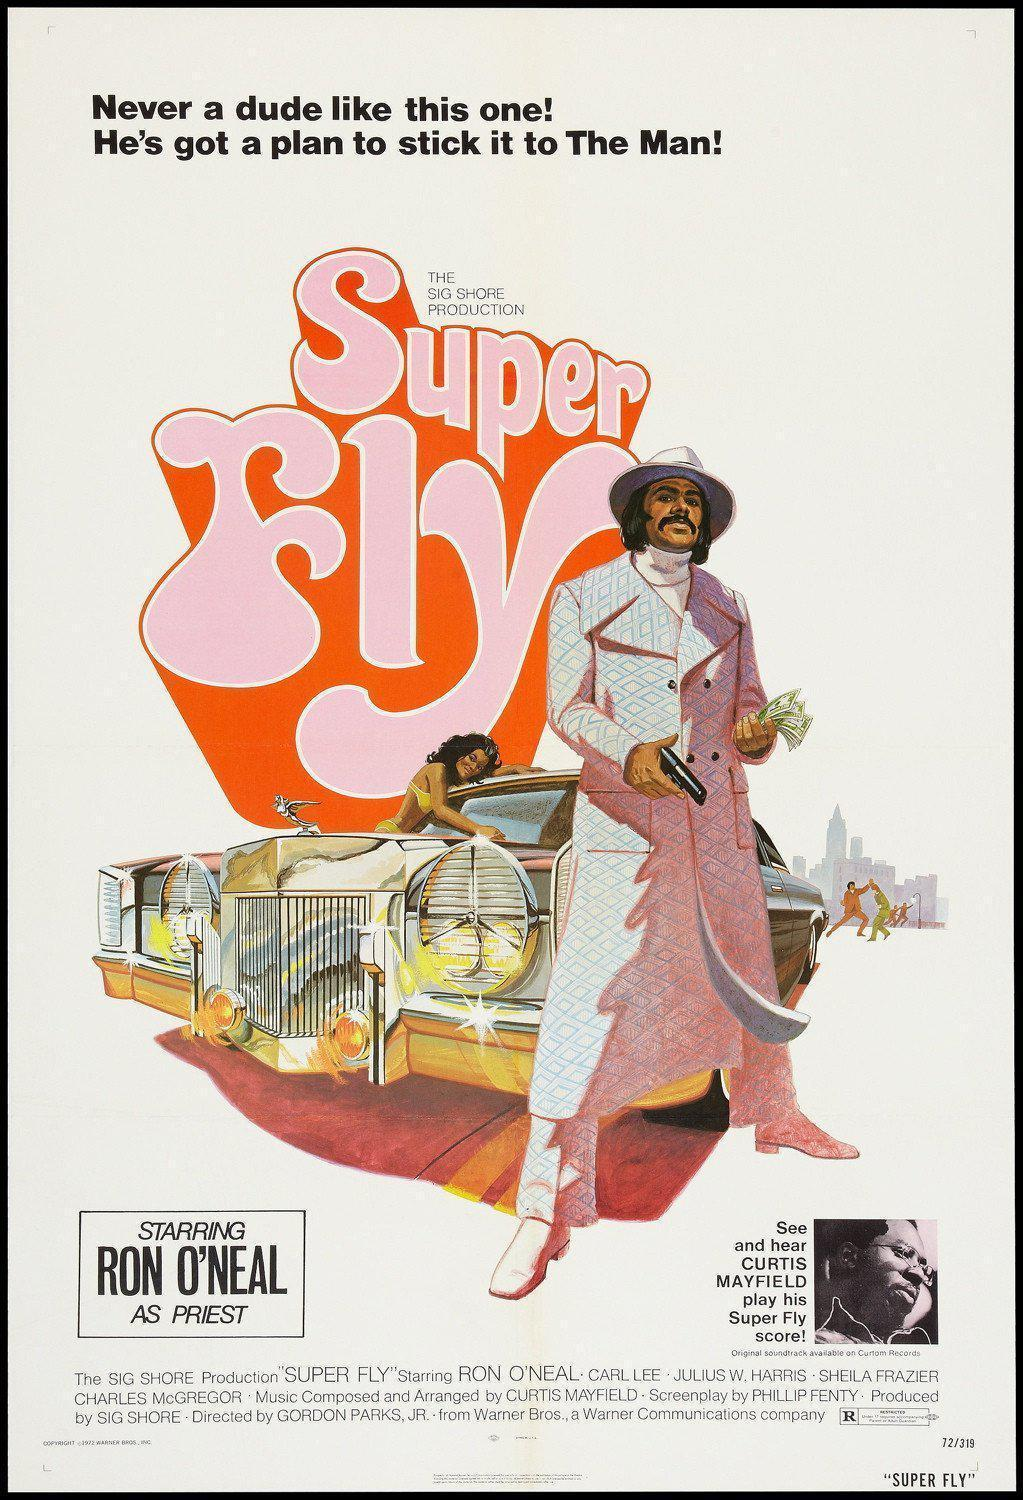 Superfly (Super Fly) 1 Sheet (27x41) Original Vintage Movie Poster